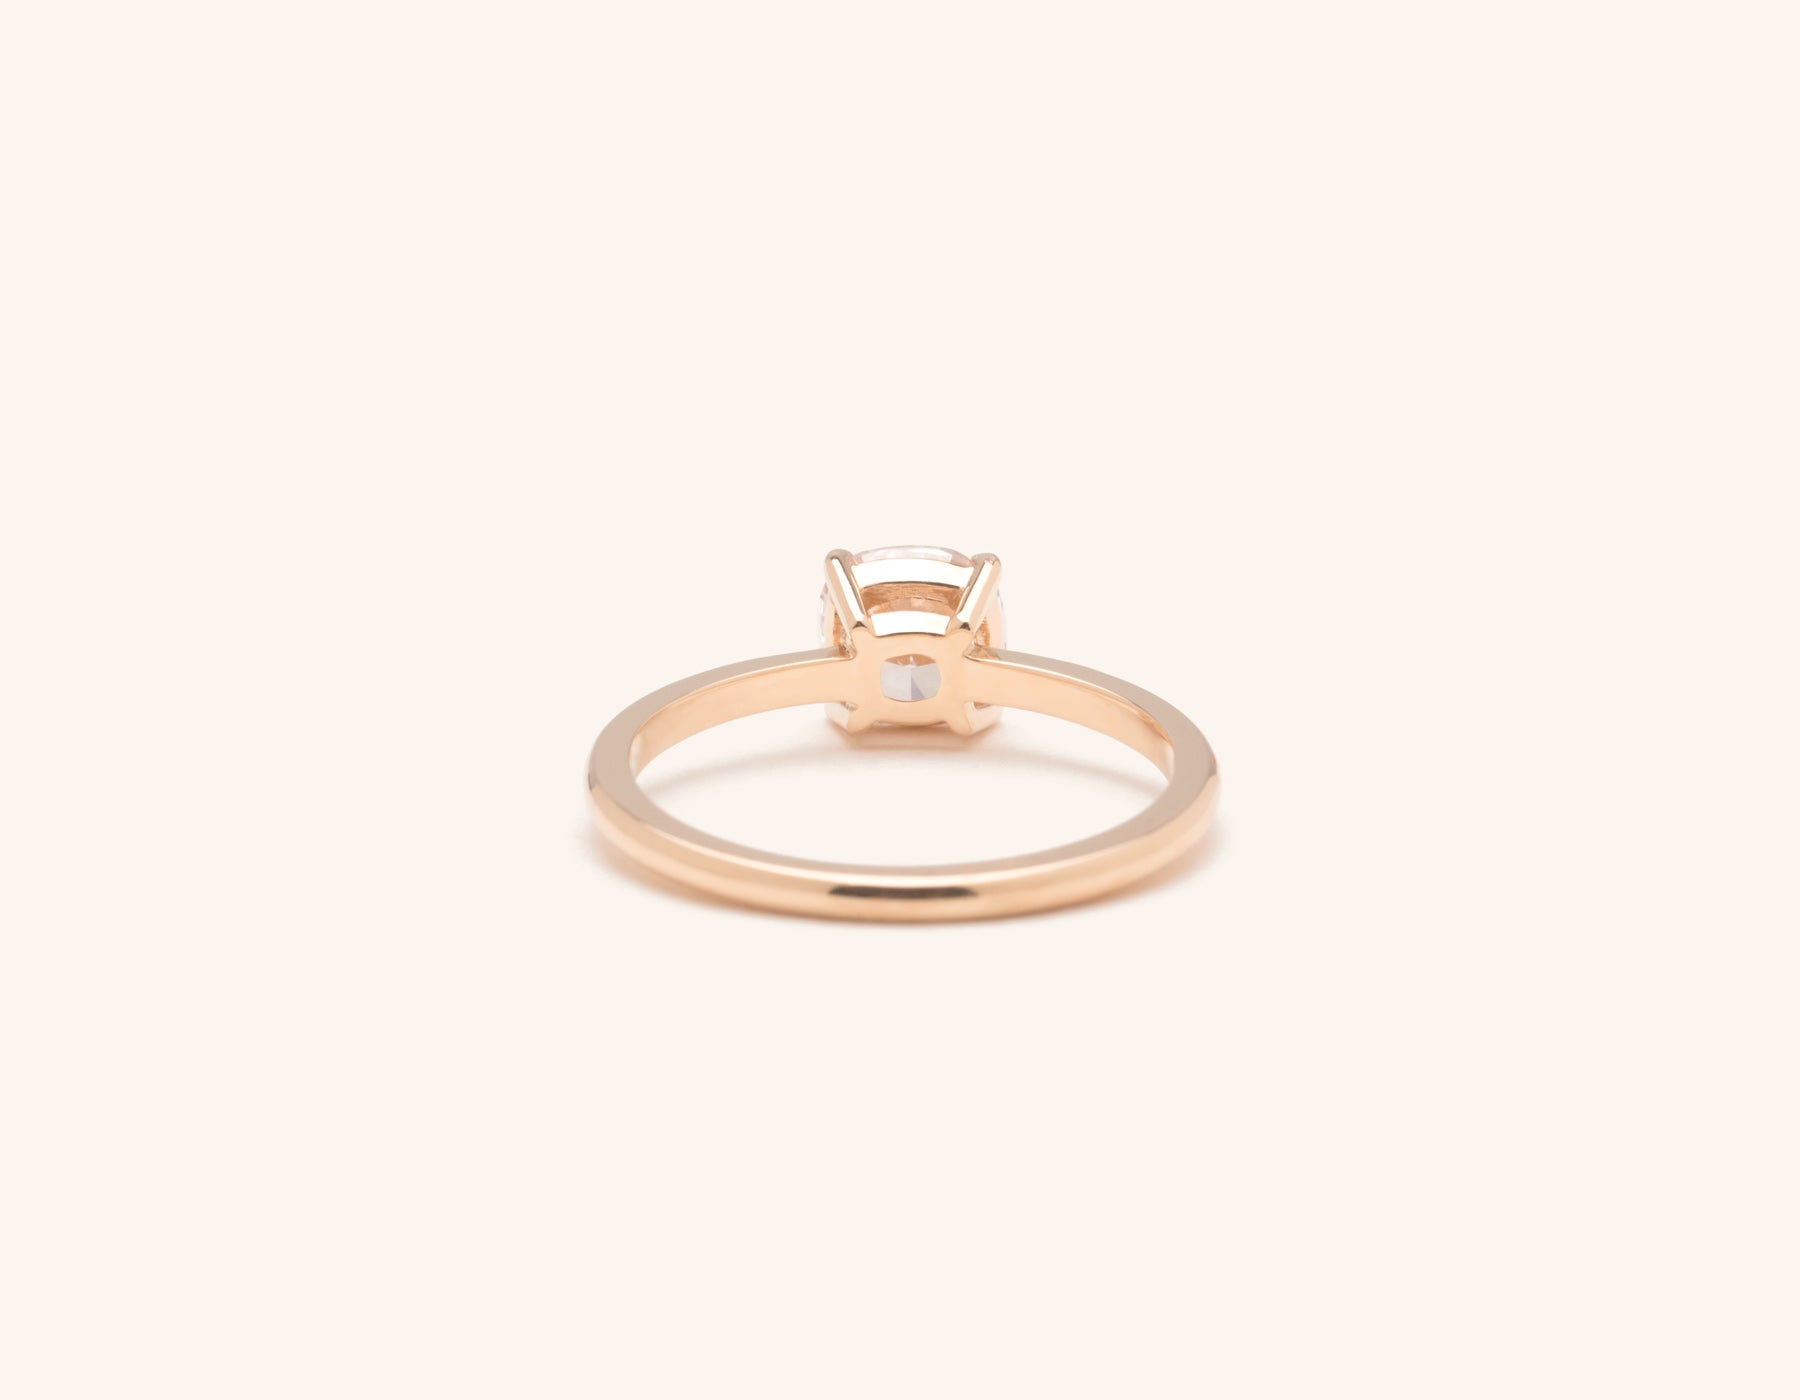 Vrai & Oro 18k solid rose gold Diamond engagement ring The Cushion simple classic band